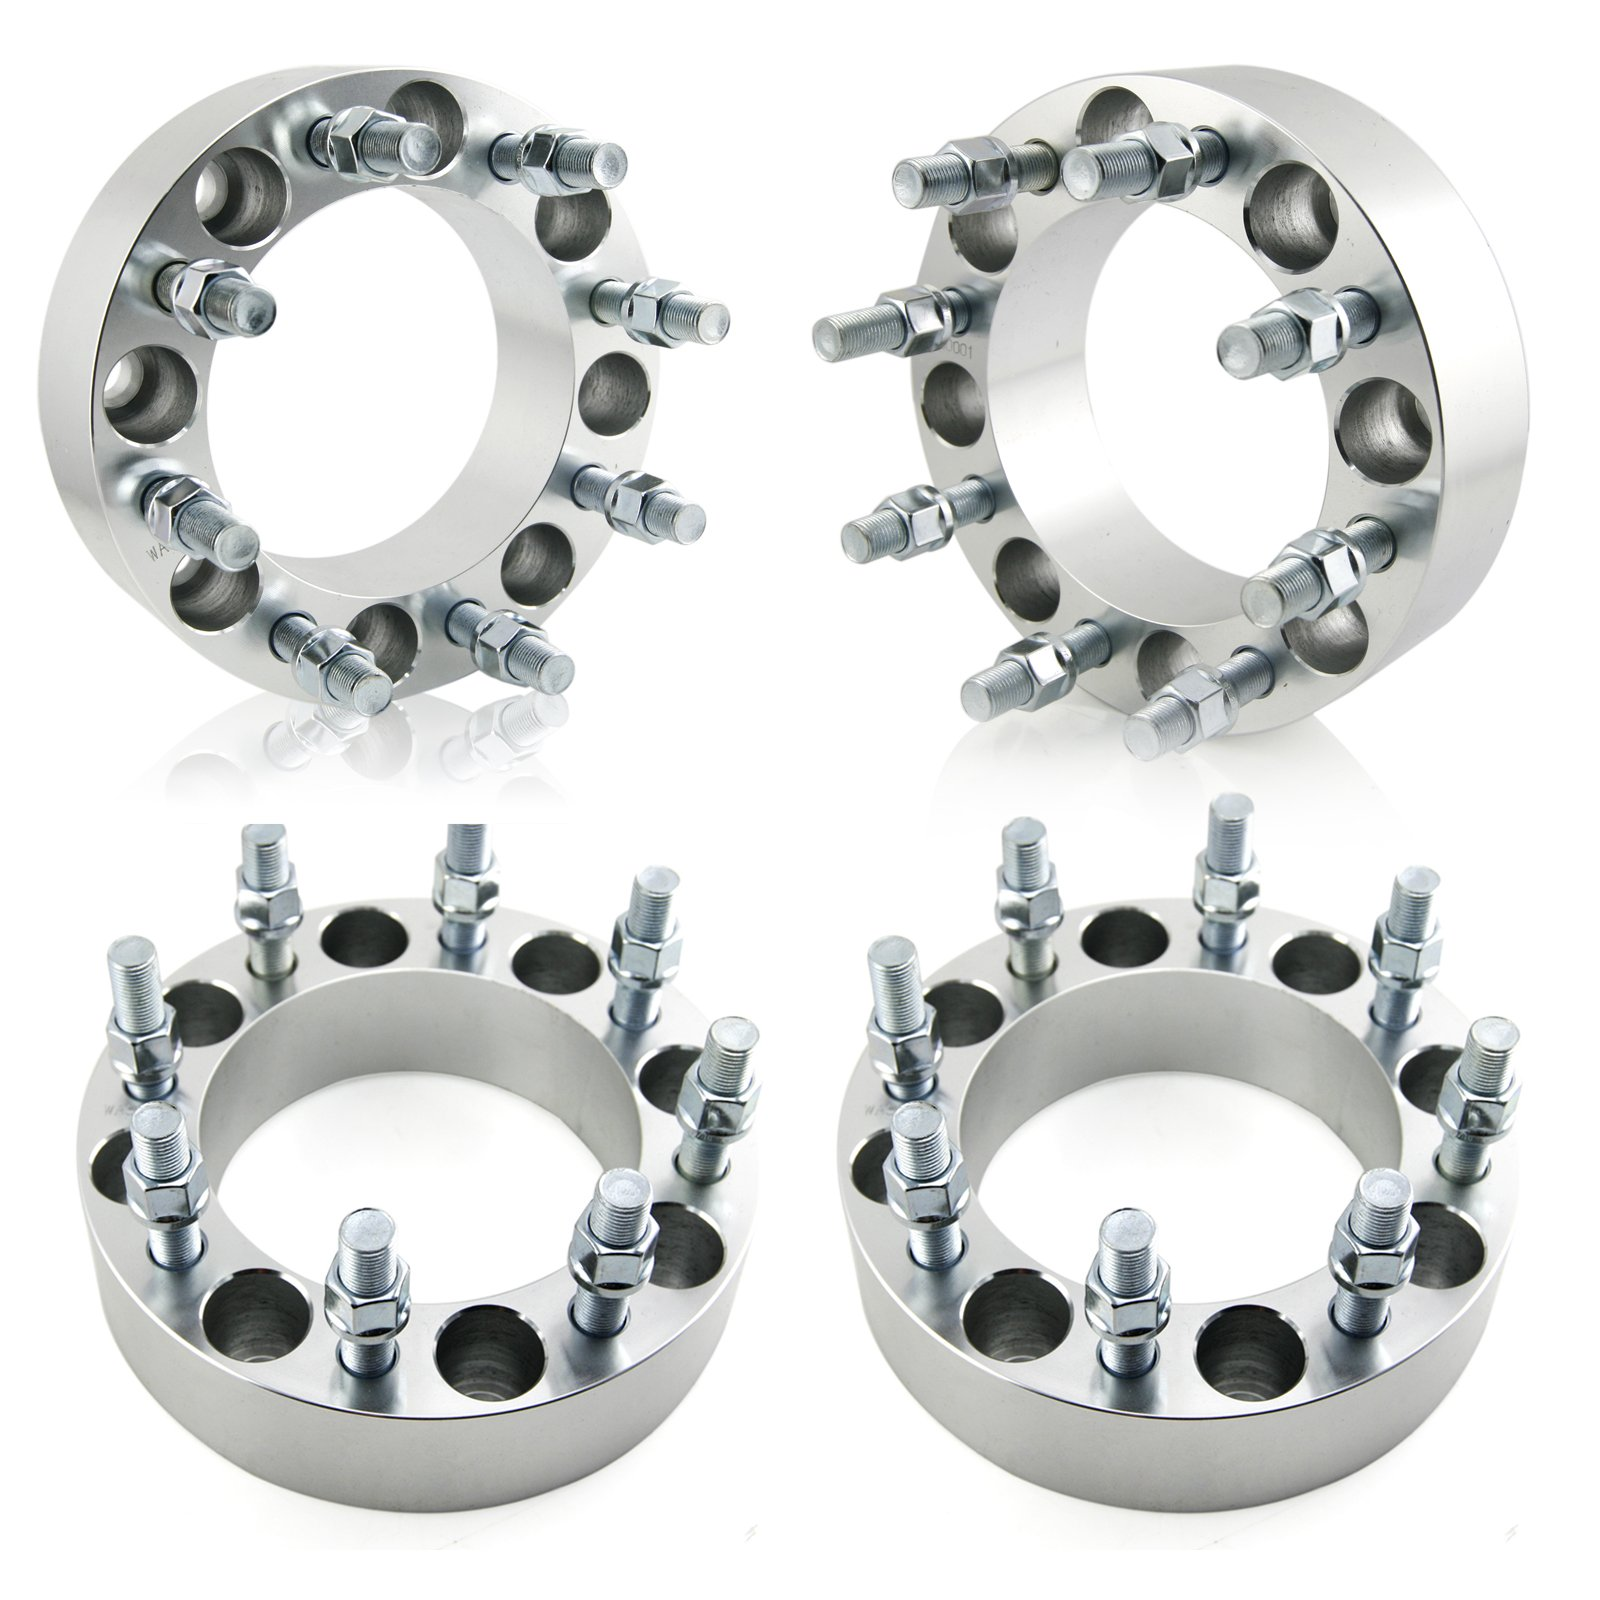 OrionMotorTech 8x6.5 Wheel Spacers 2 inches with 9/16-18 Studs for 1994-2011 Dodge Ram 2500 3500, 1988-1998 Ford F-250 F-350, 4pcs by OrionMotorTech